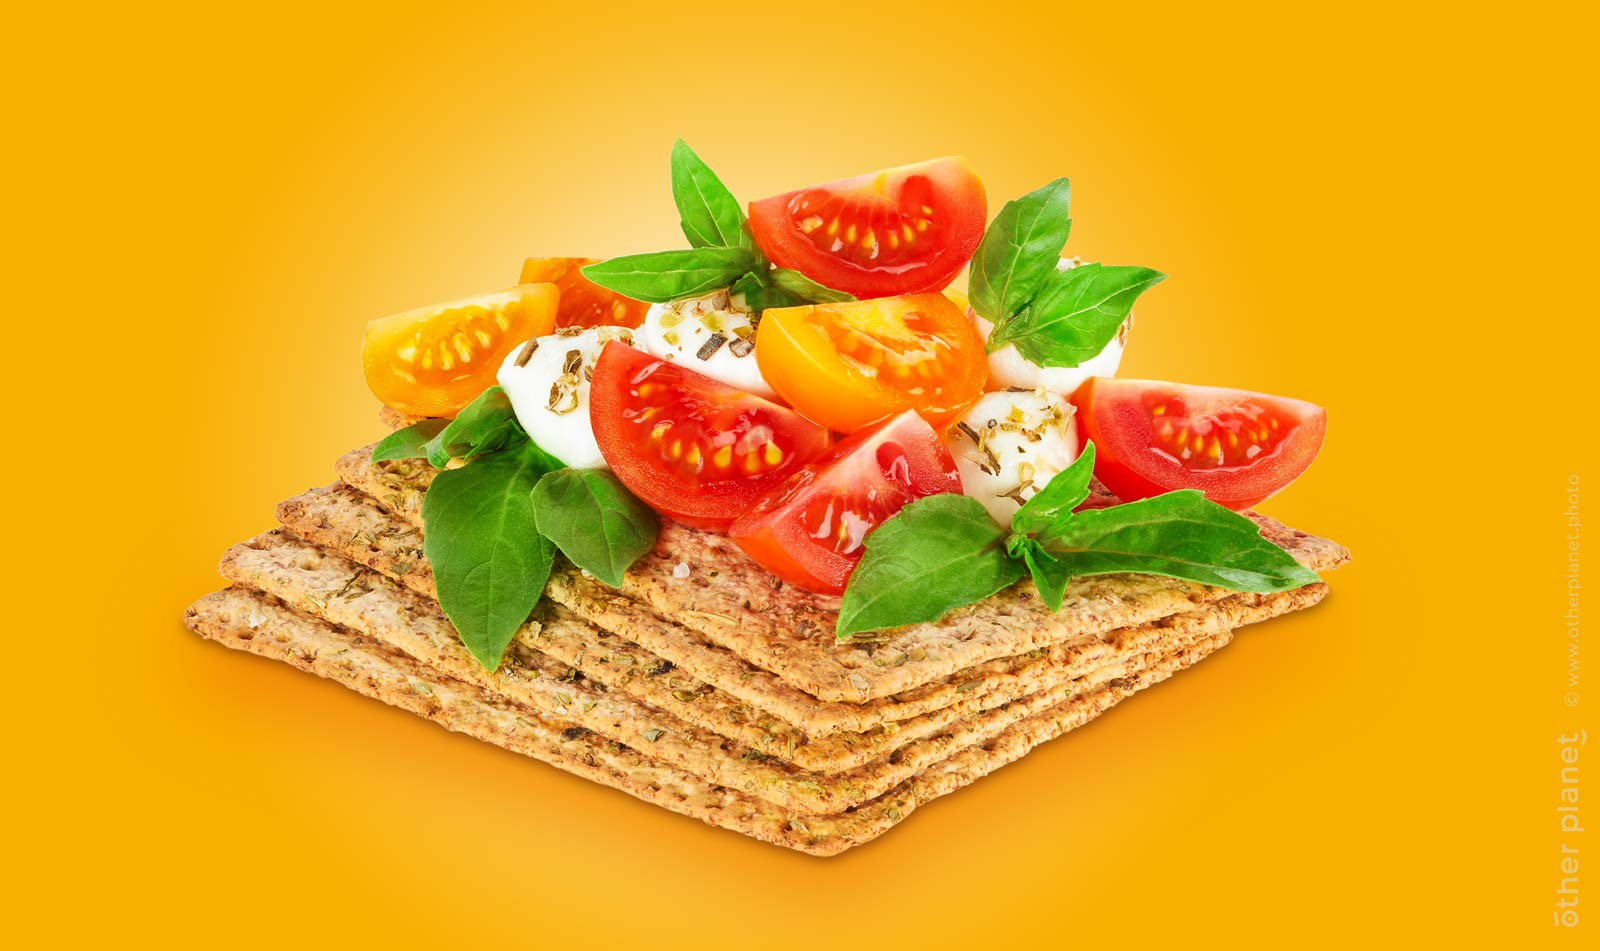 Food appeal photo for whole grain crackers with cherry tomatoes basil and mozzarella